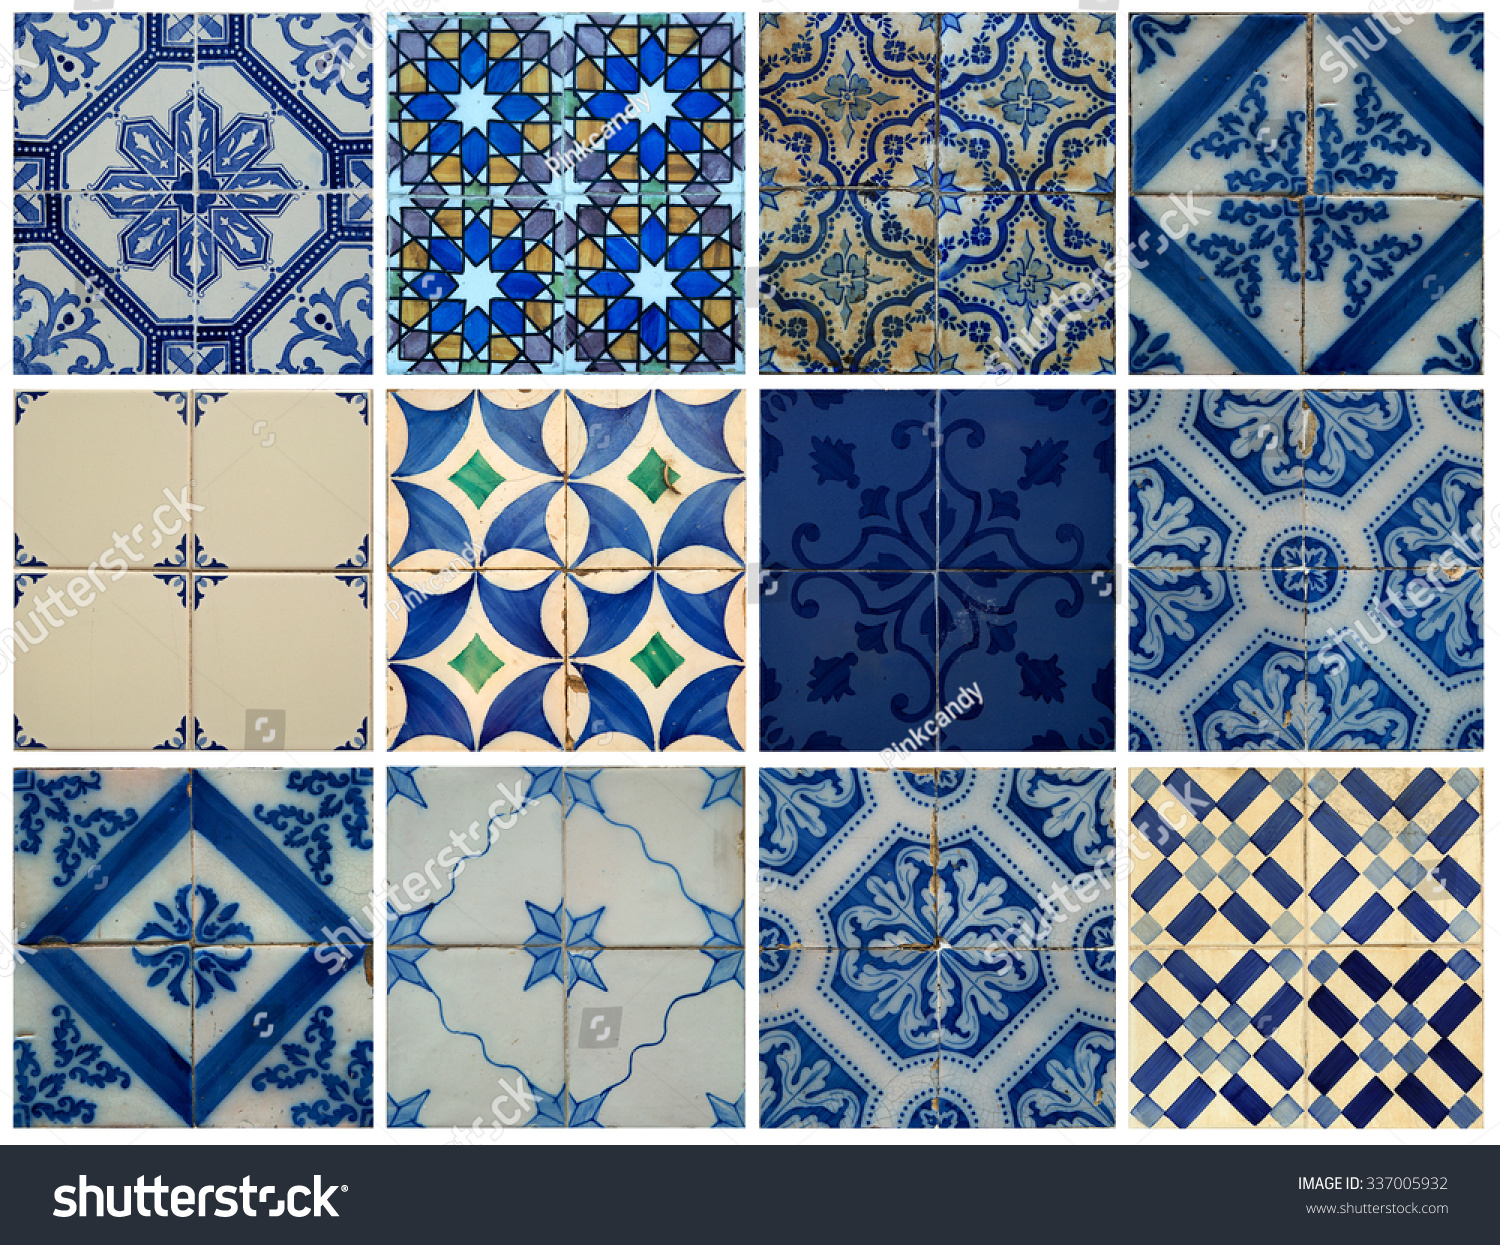 Collage of different blue pattern tiles in Lisbon, Portugal | EZ Canvas